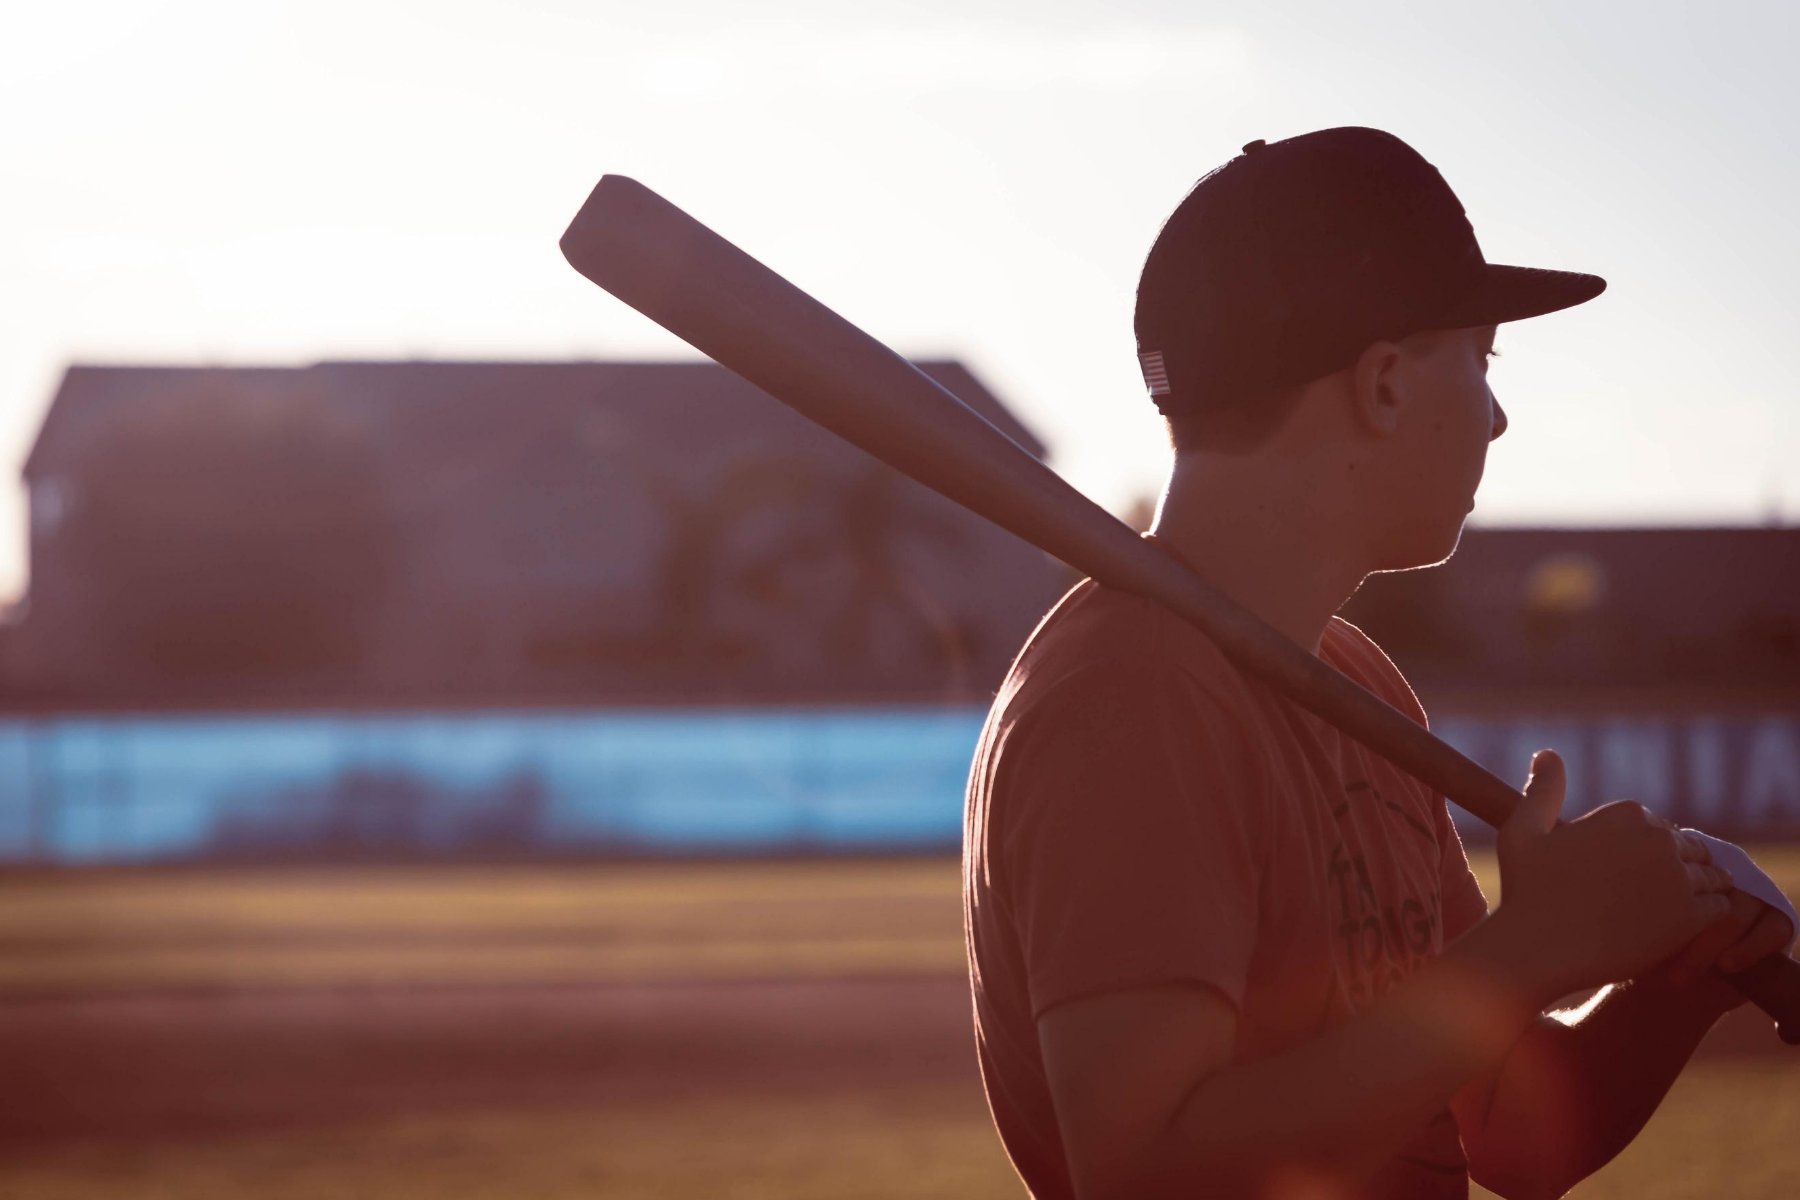 photo shows a young man with a baseball bat and